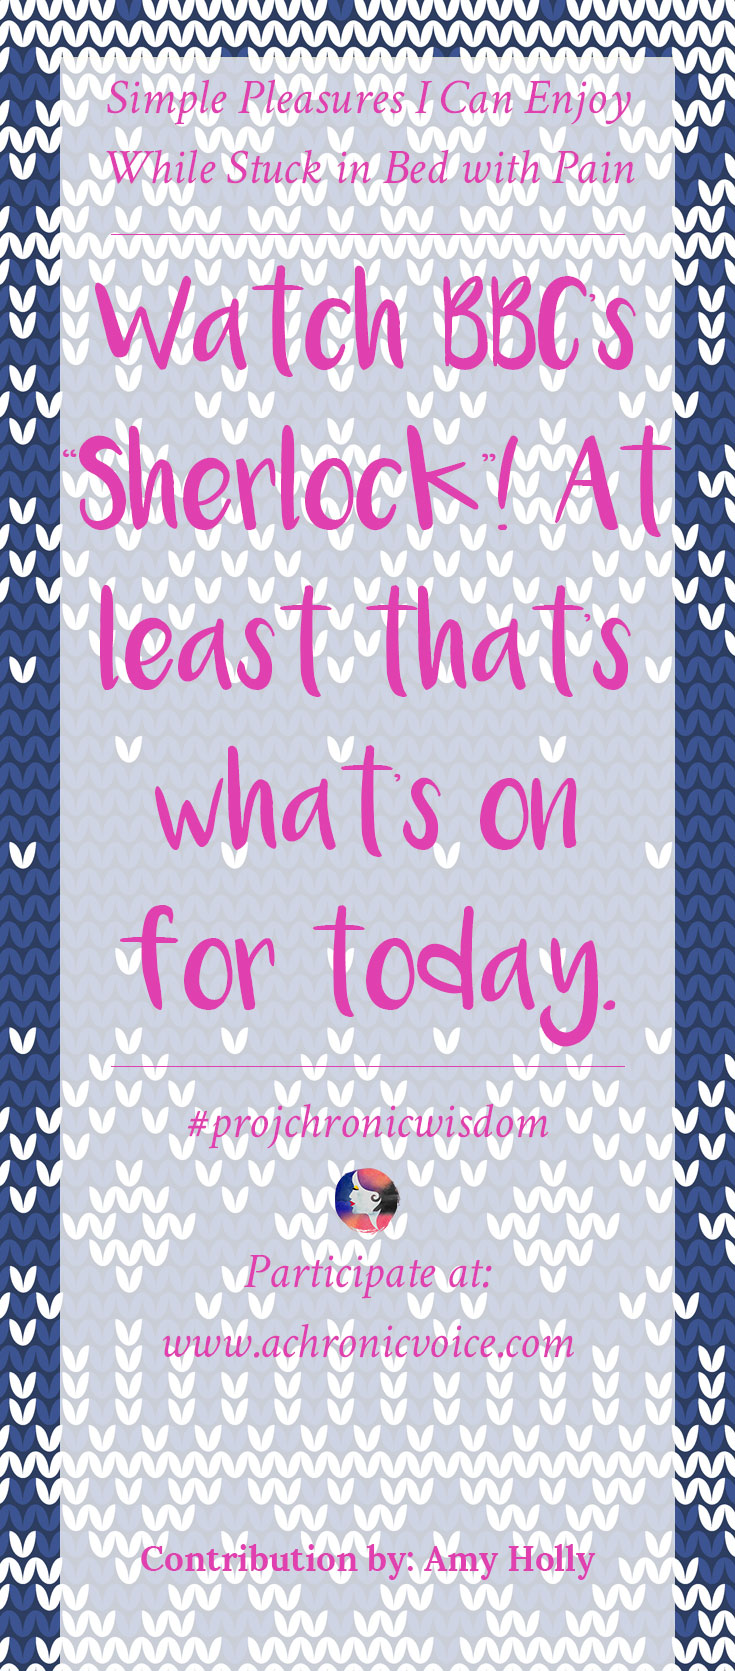 """""""Watch BBC's """"Sherlock""""! At least that's what's on for today."""" - Amy Holly 